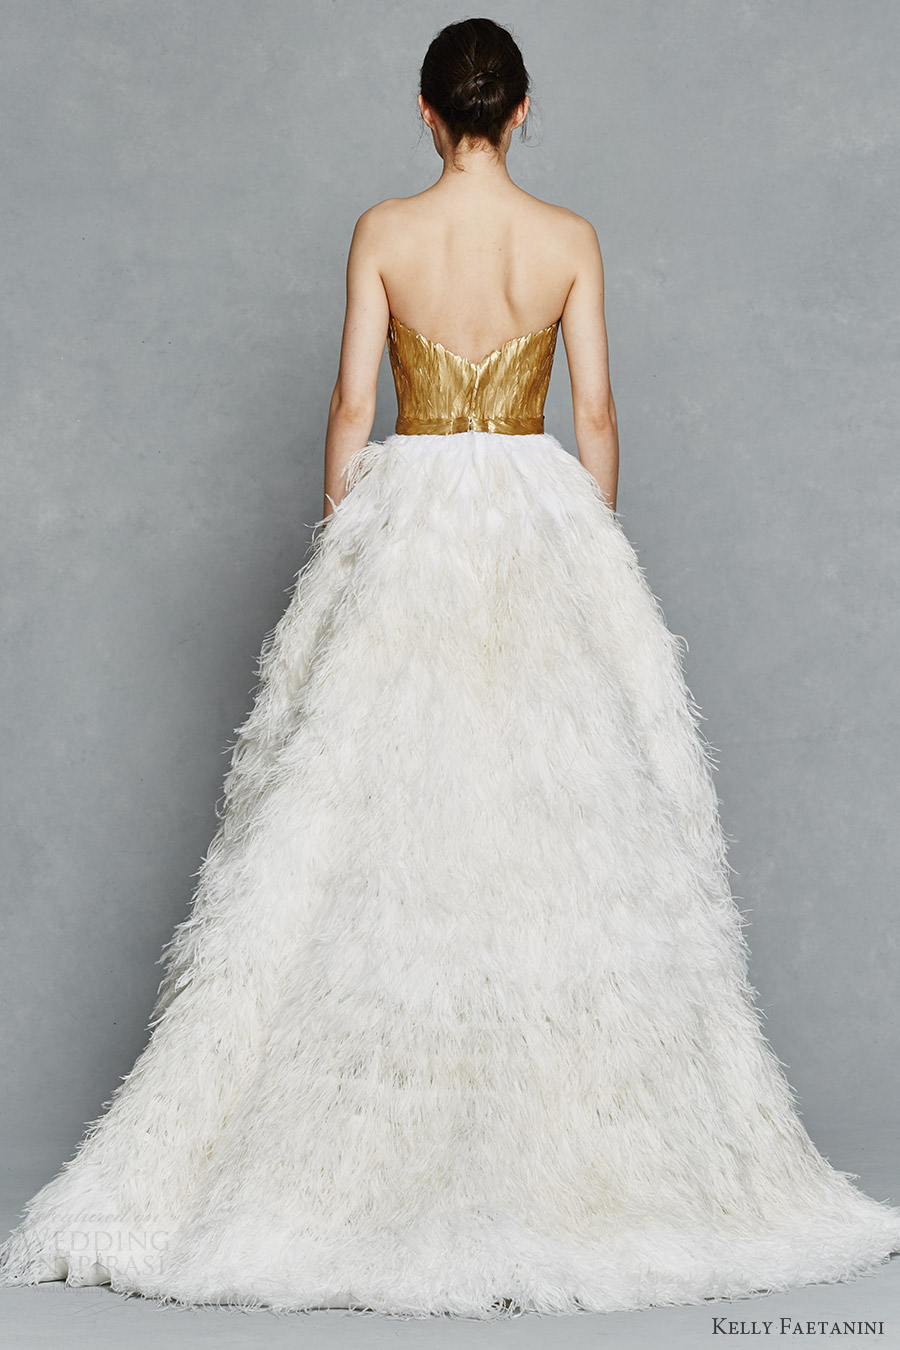 0eea40e76 kelly faetanini bridal spring 2017 strapless sweetheart gold painted  feather bodice ball gown wedding dress (